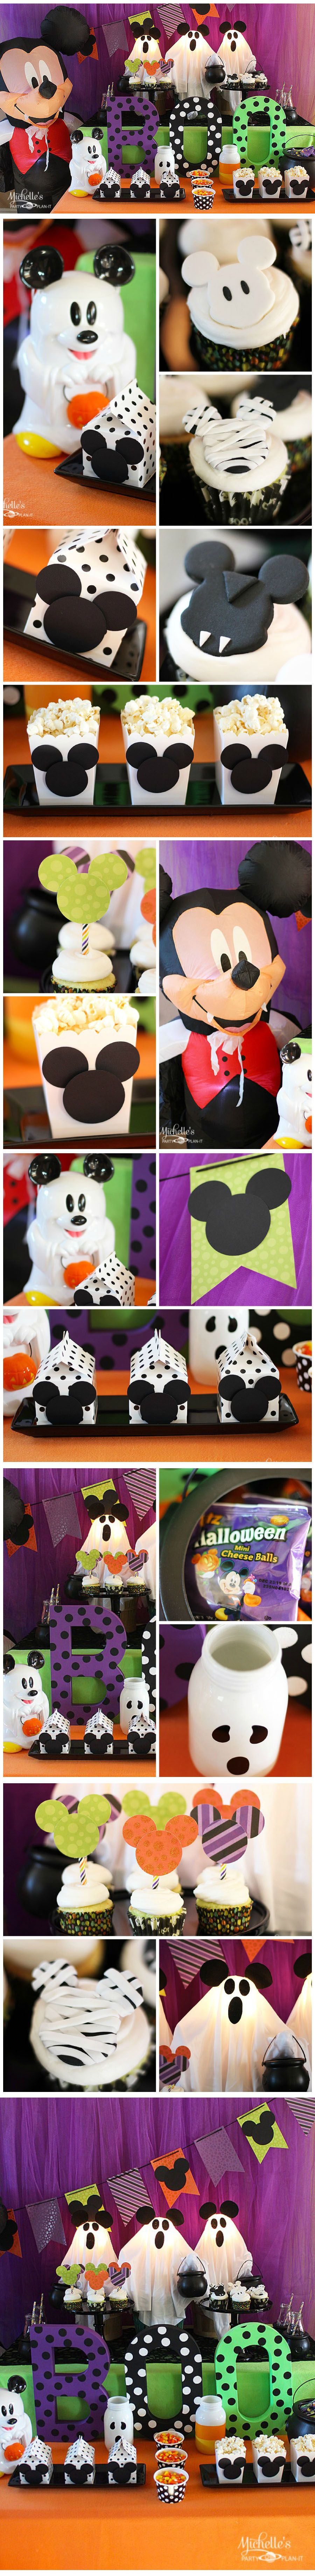 love mickey and halloween why not celebrate halloween week with a mickey halloween party